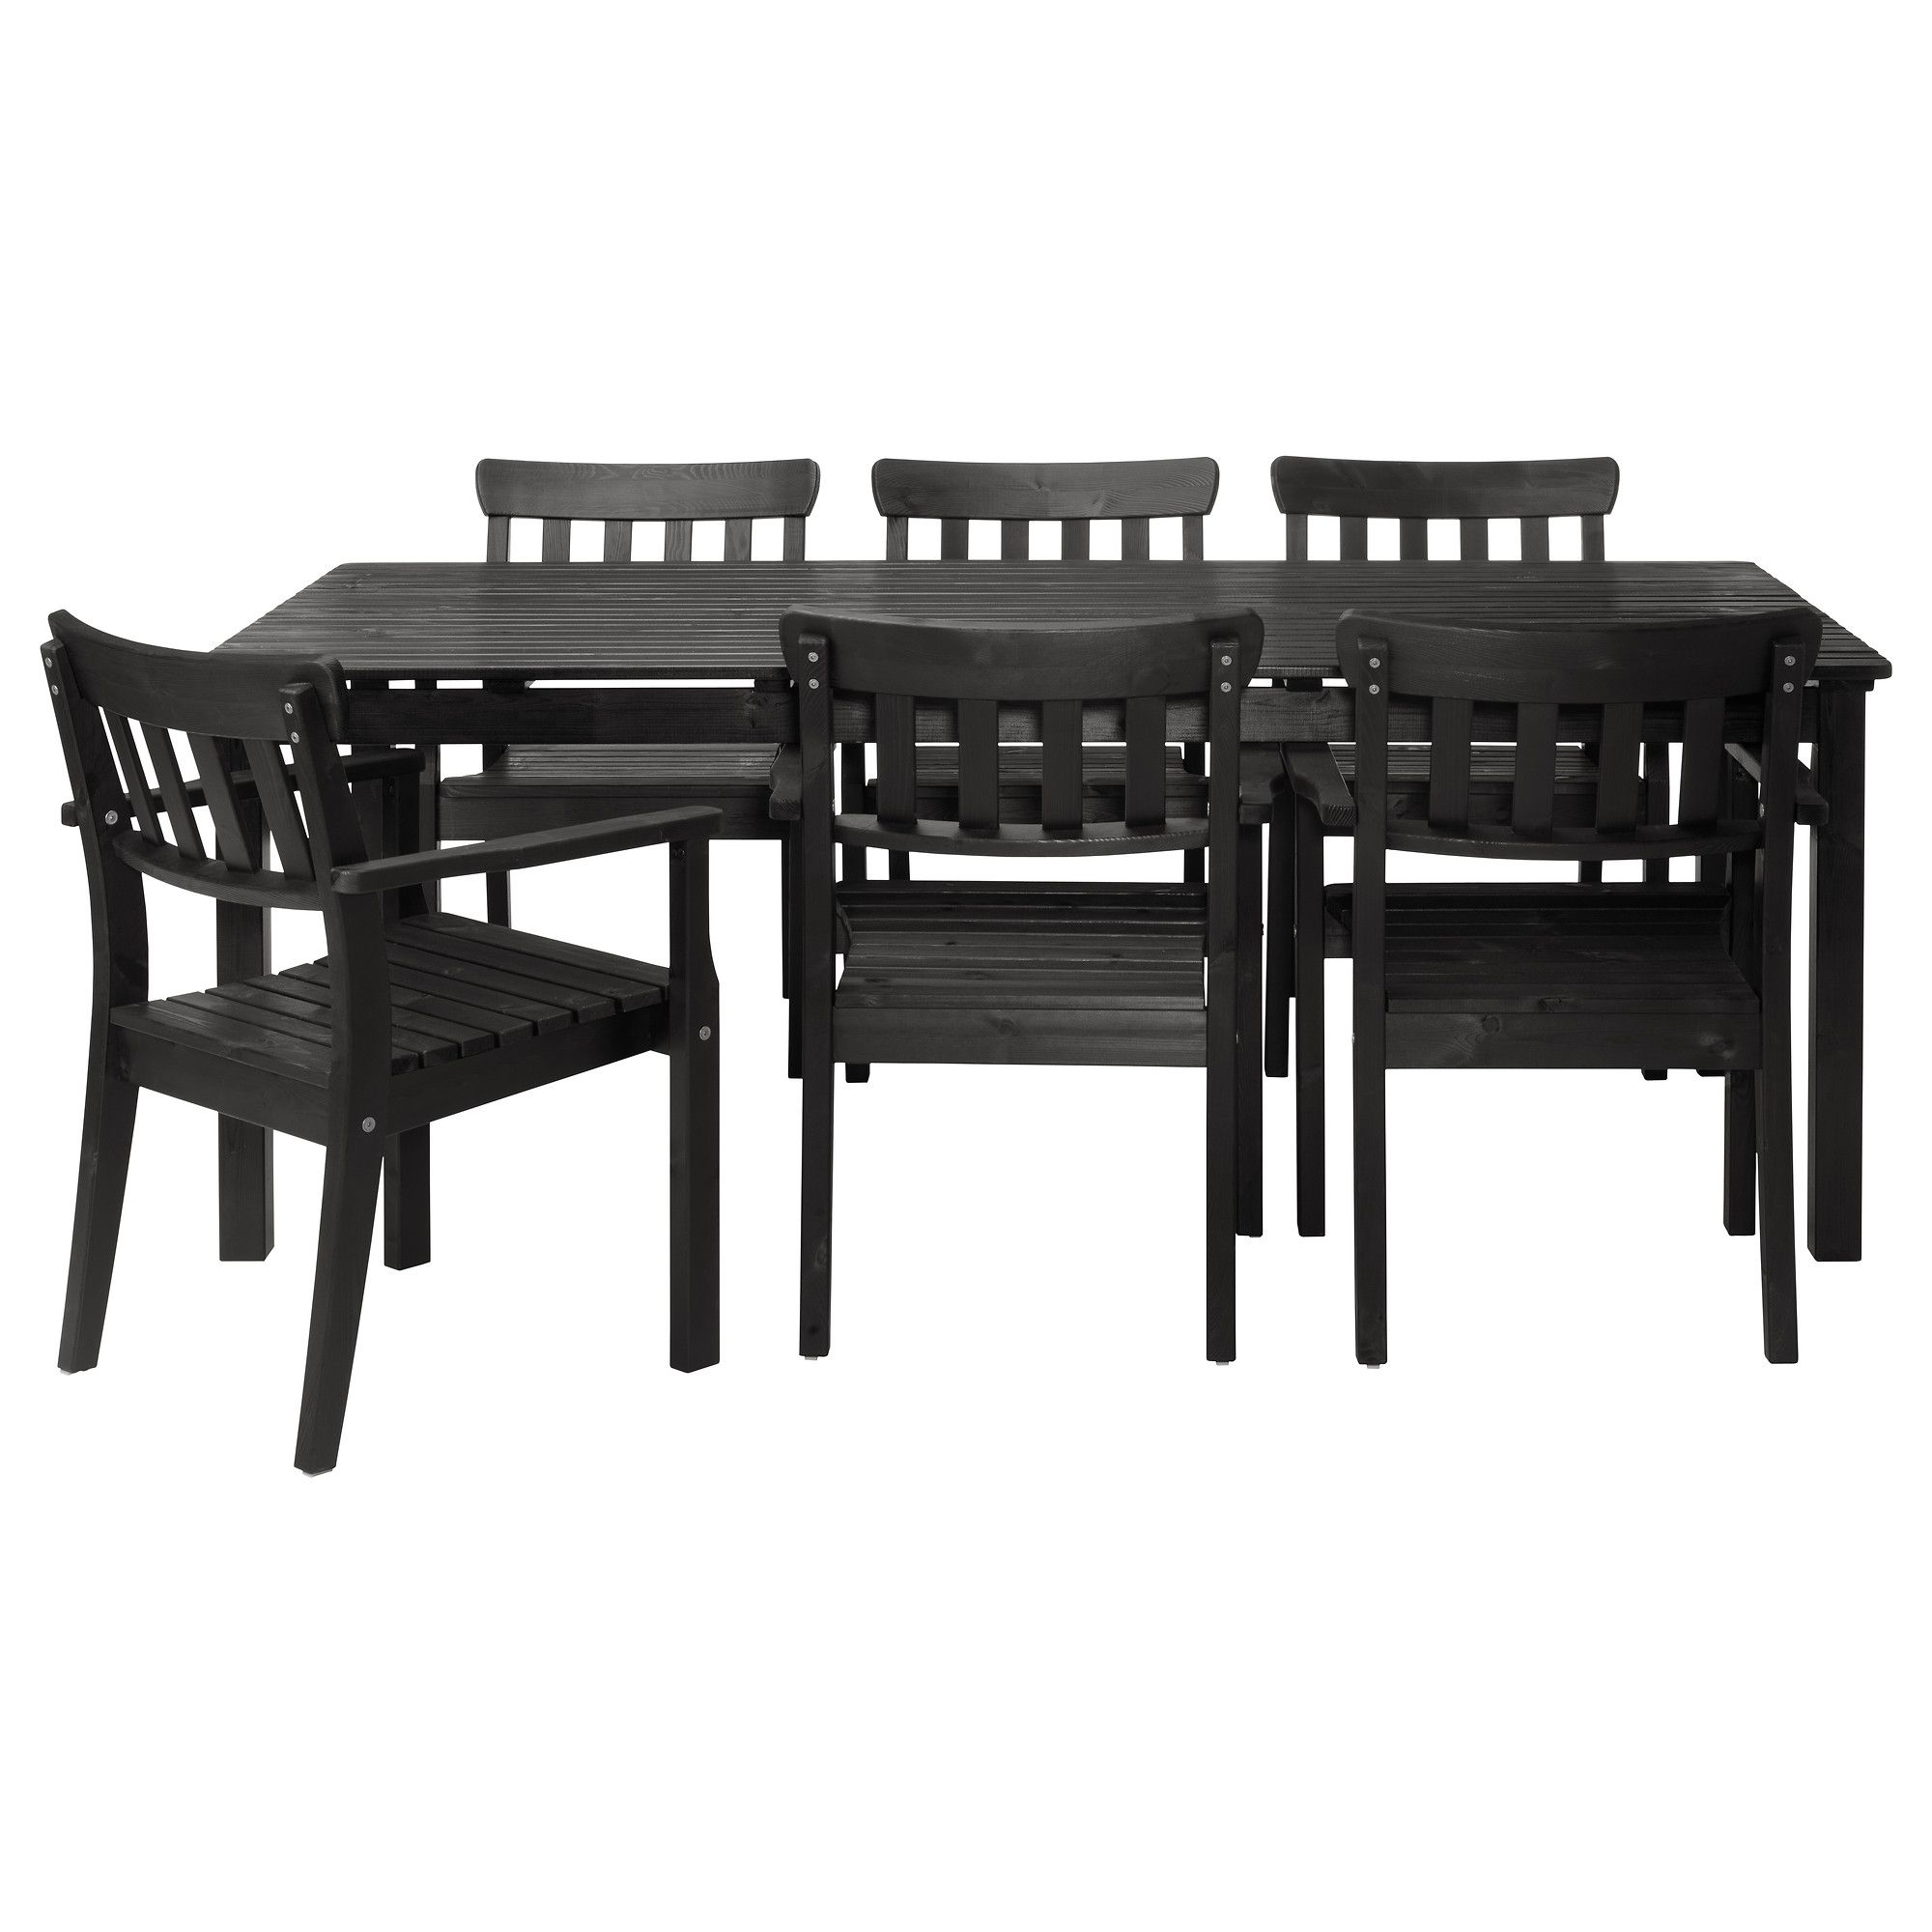 Black Dining Chairs Ikea Patio ÄngsÖ Table And 6 Chairs Black Brown Ikea I